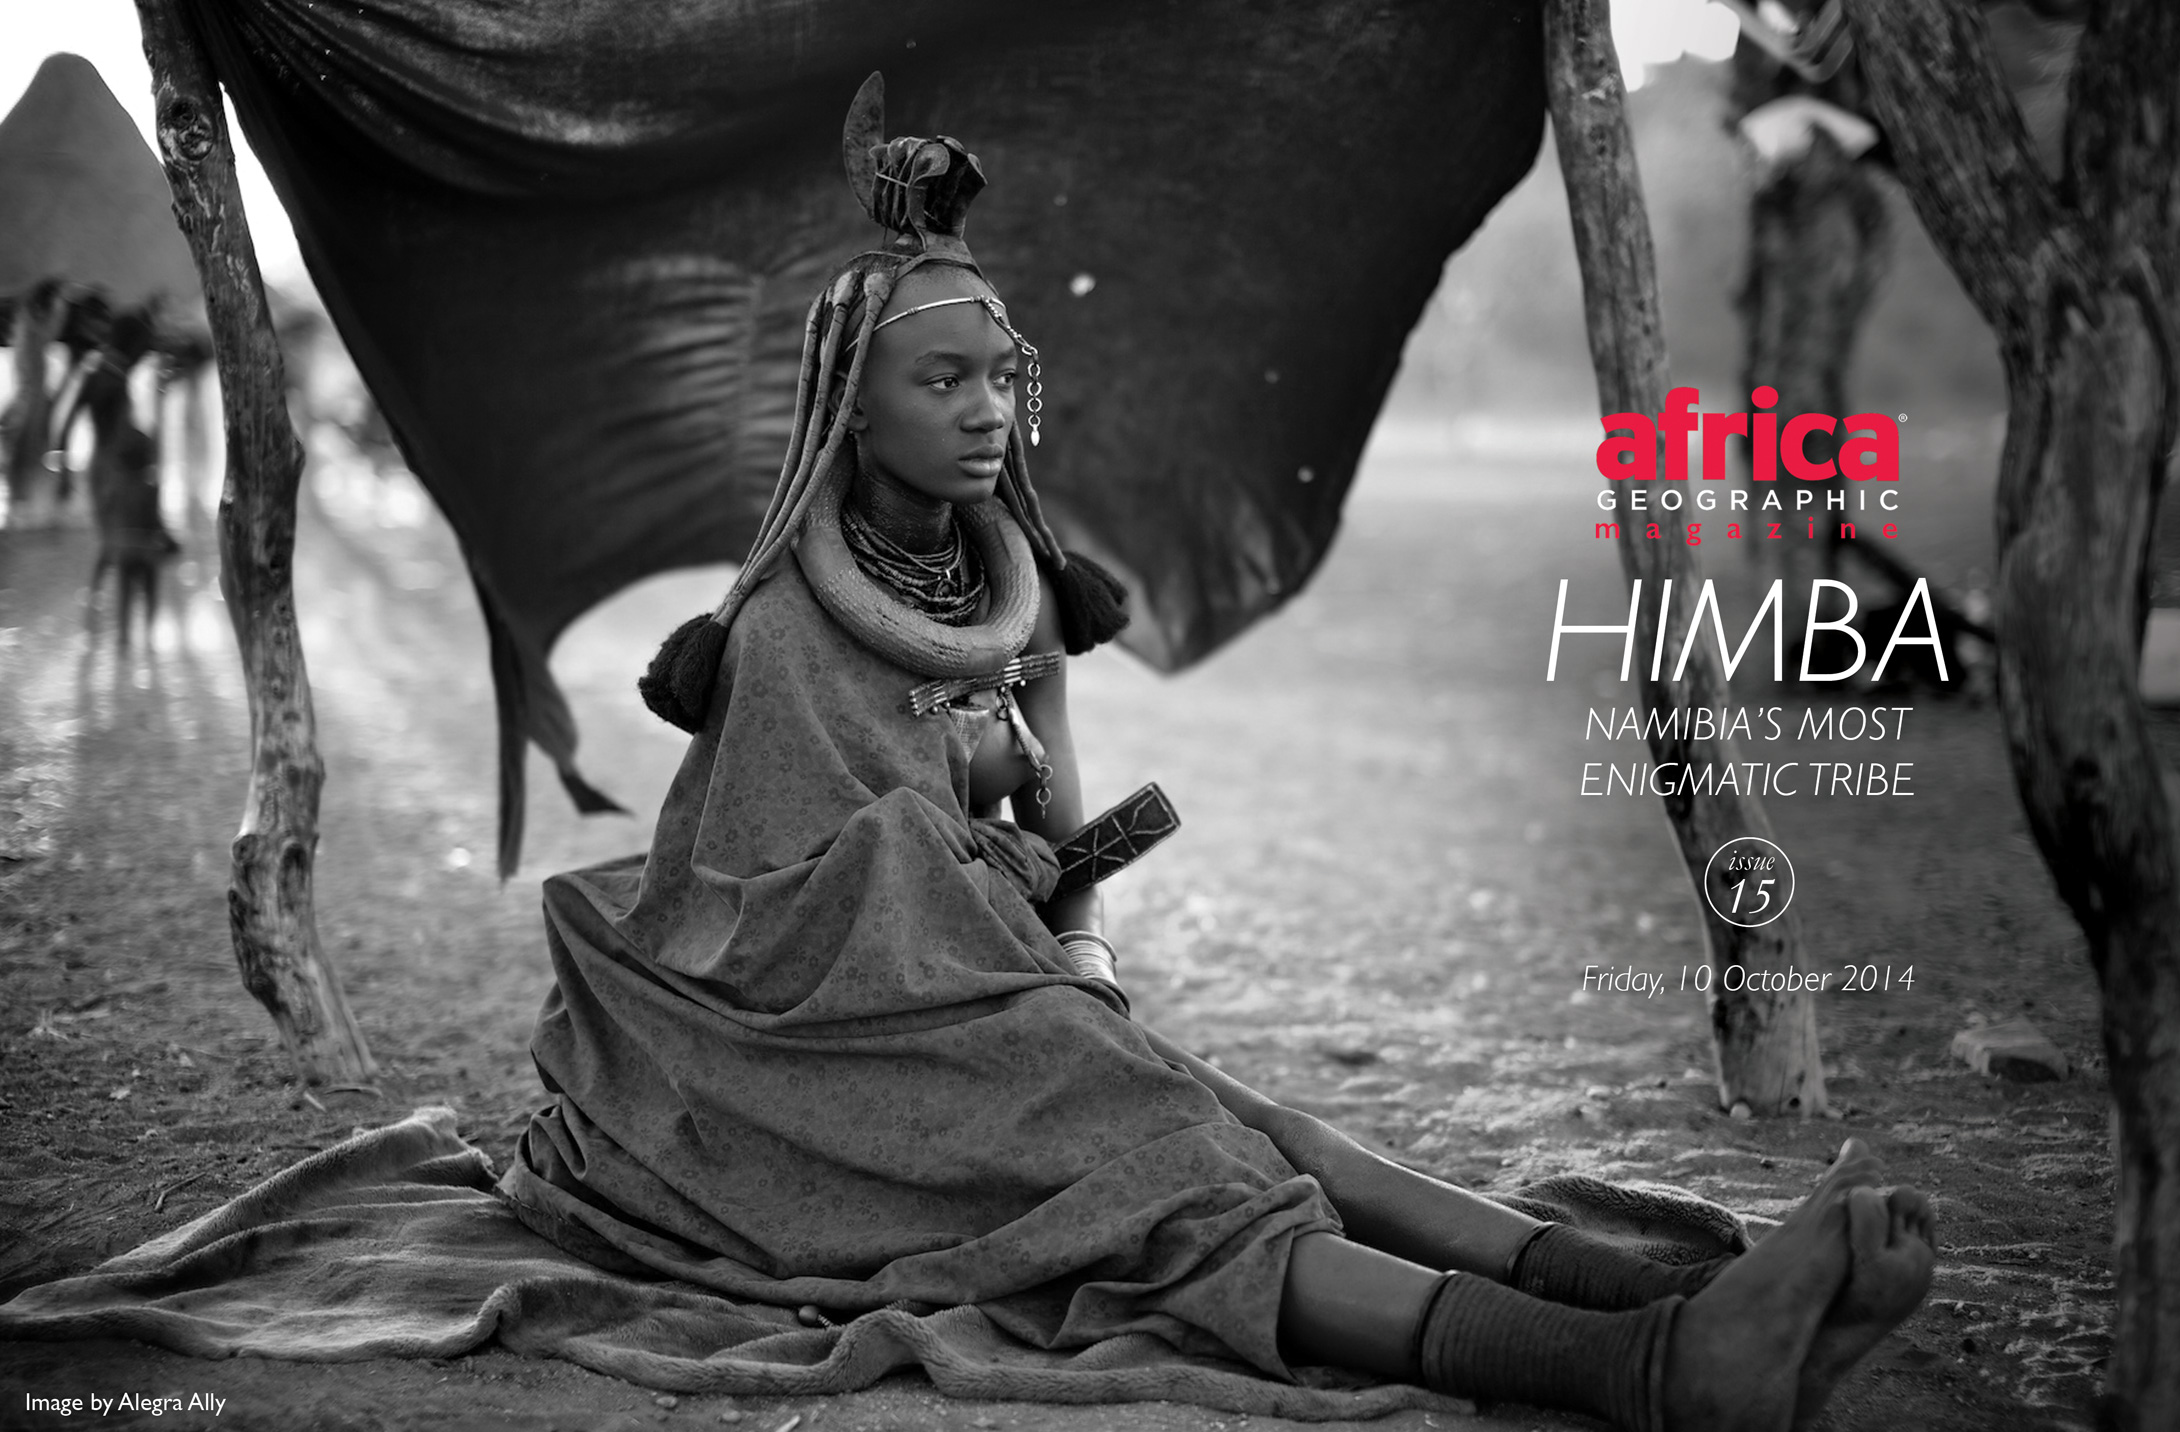 himba-namibia-cover-africa-geographic-15